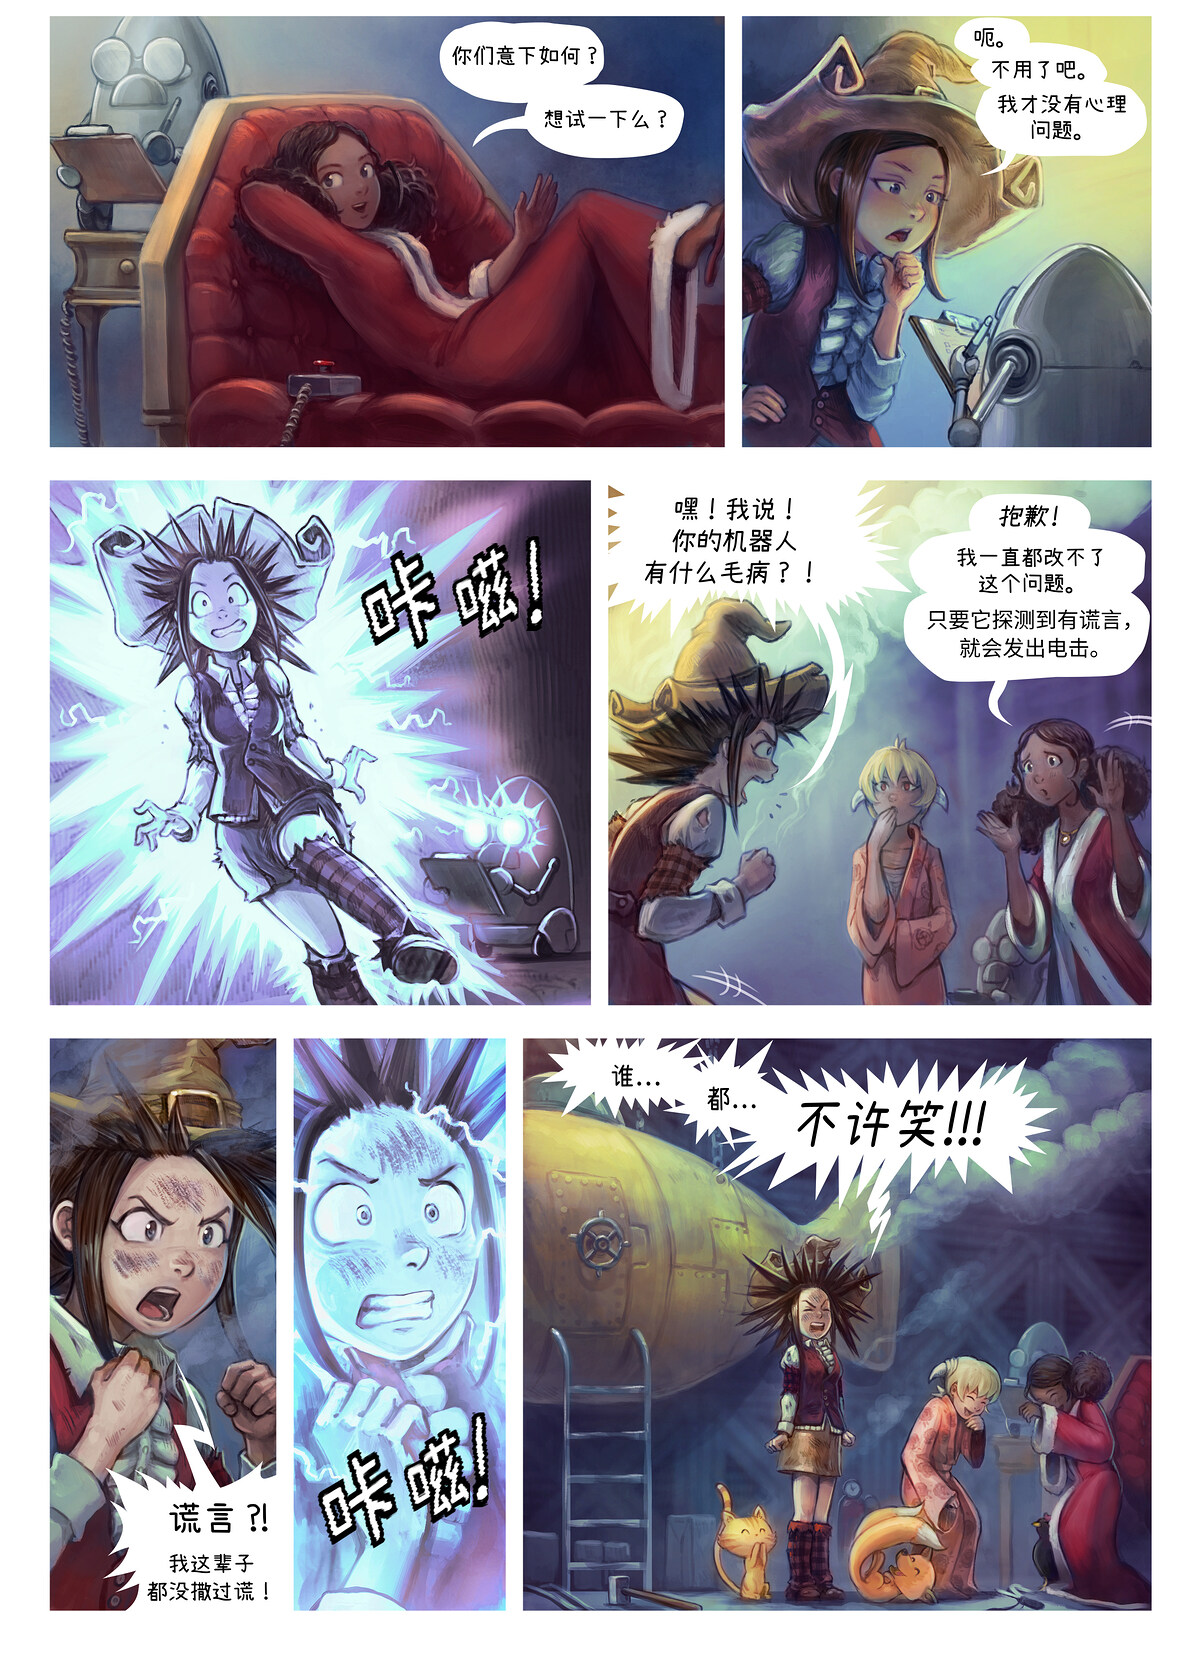 A webcomic page of Pepper&Carrot, 漫画全集 27 [cn], 页面 4